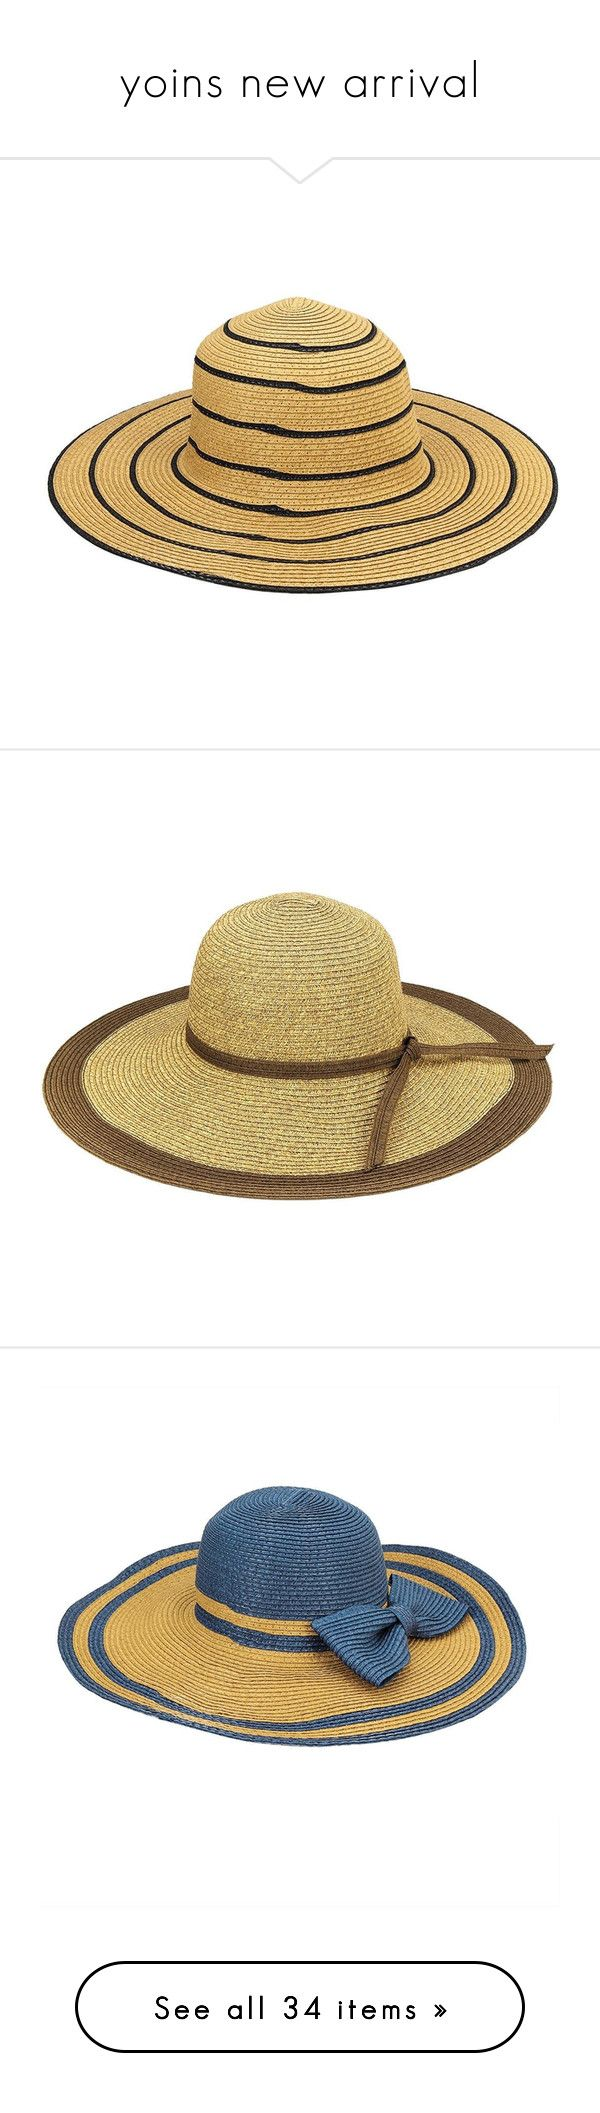 """yoins new arrival"" by yoinscollection ❤ liked on Polyvore featuring accessories, hats, floppy beach hat, floppy sunhat, summer hats, straw sunhat, floppy sun hat, straw hat, wide brim floppy hat and flop hat"